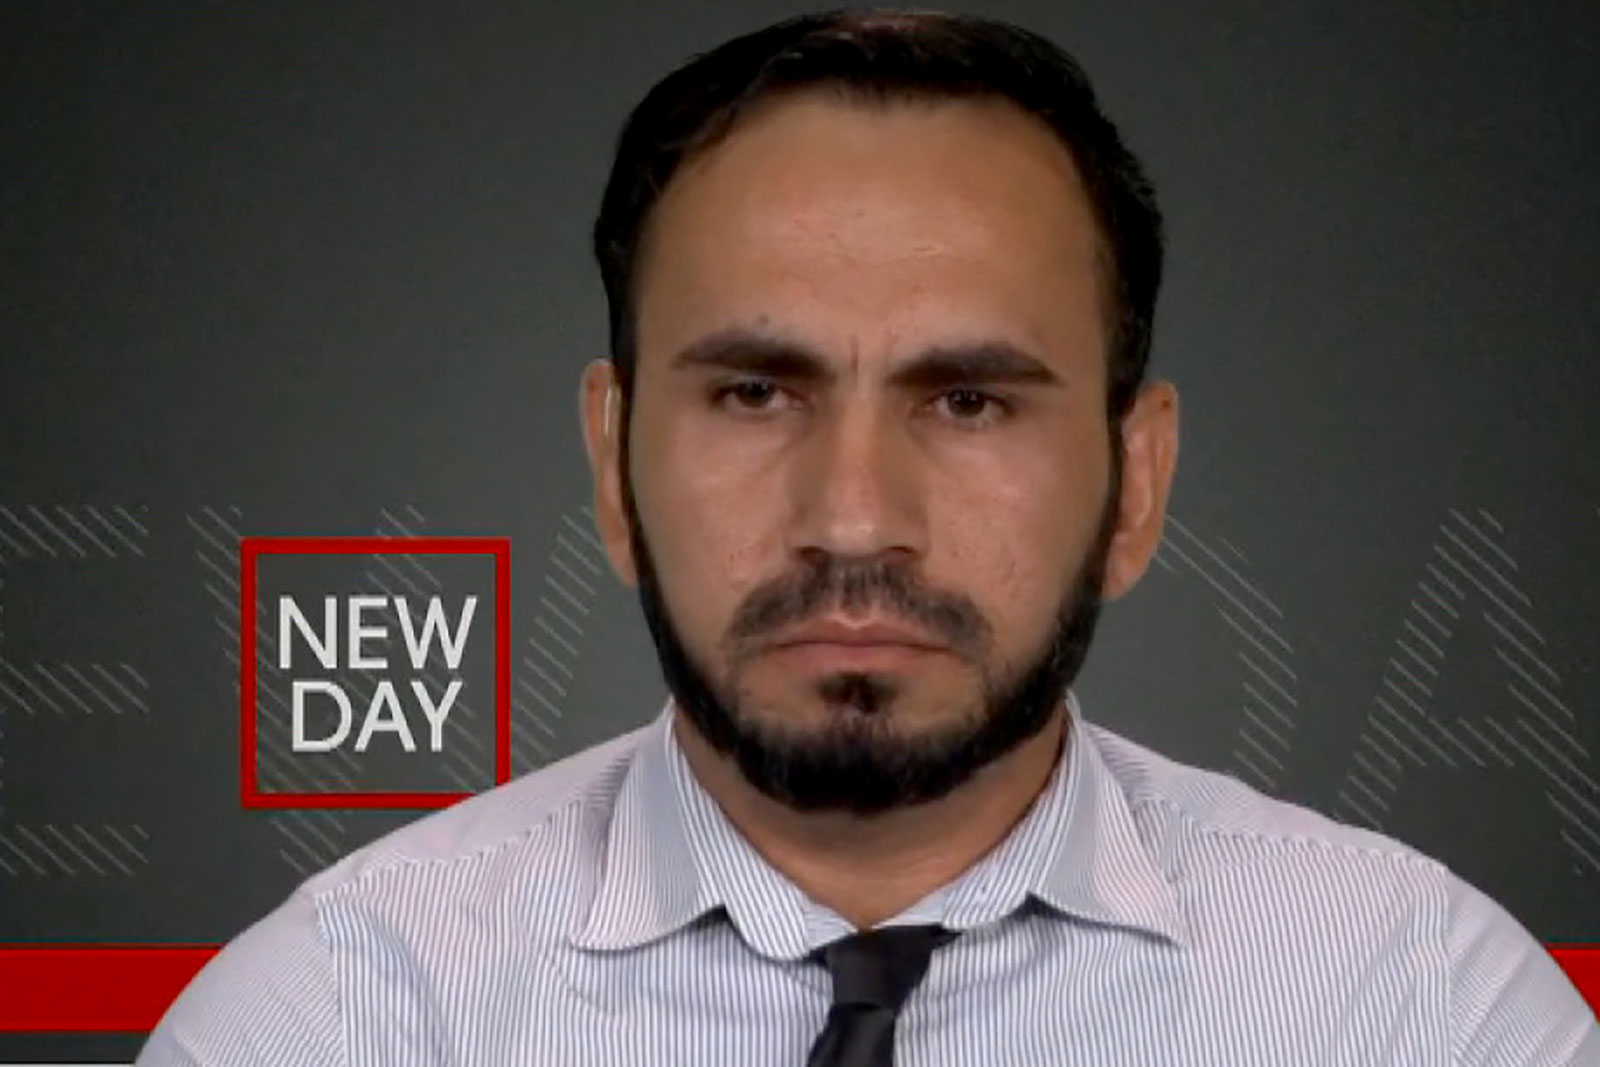 Said Noor on CNN's New Day.